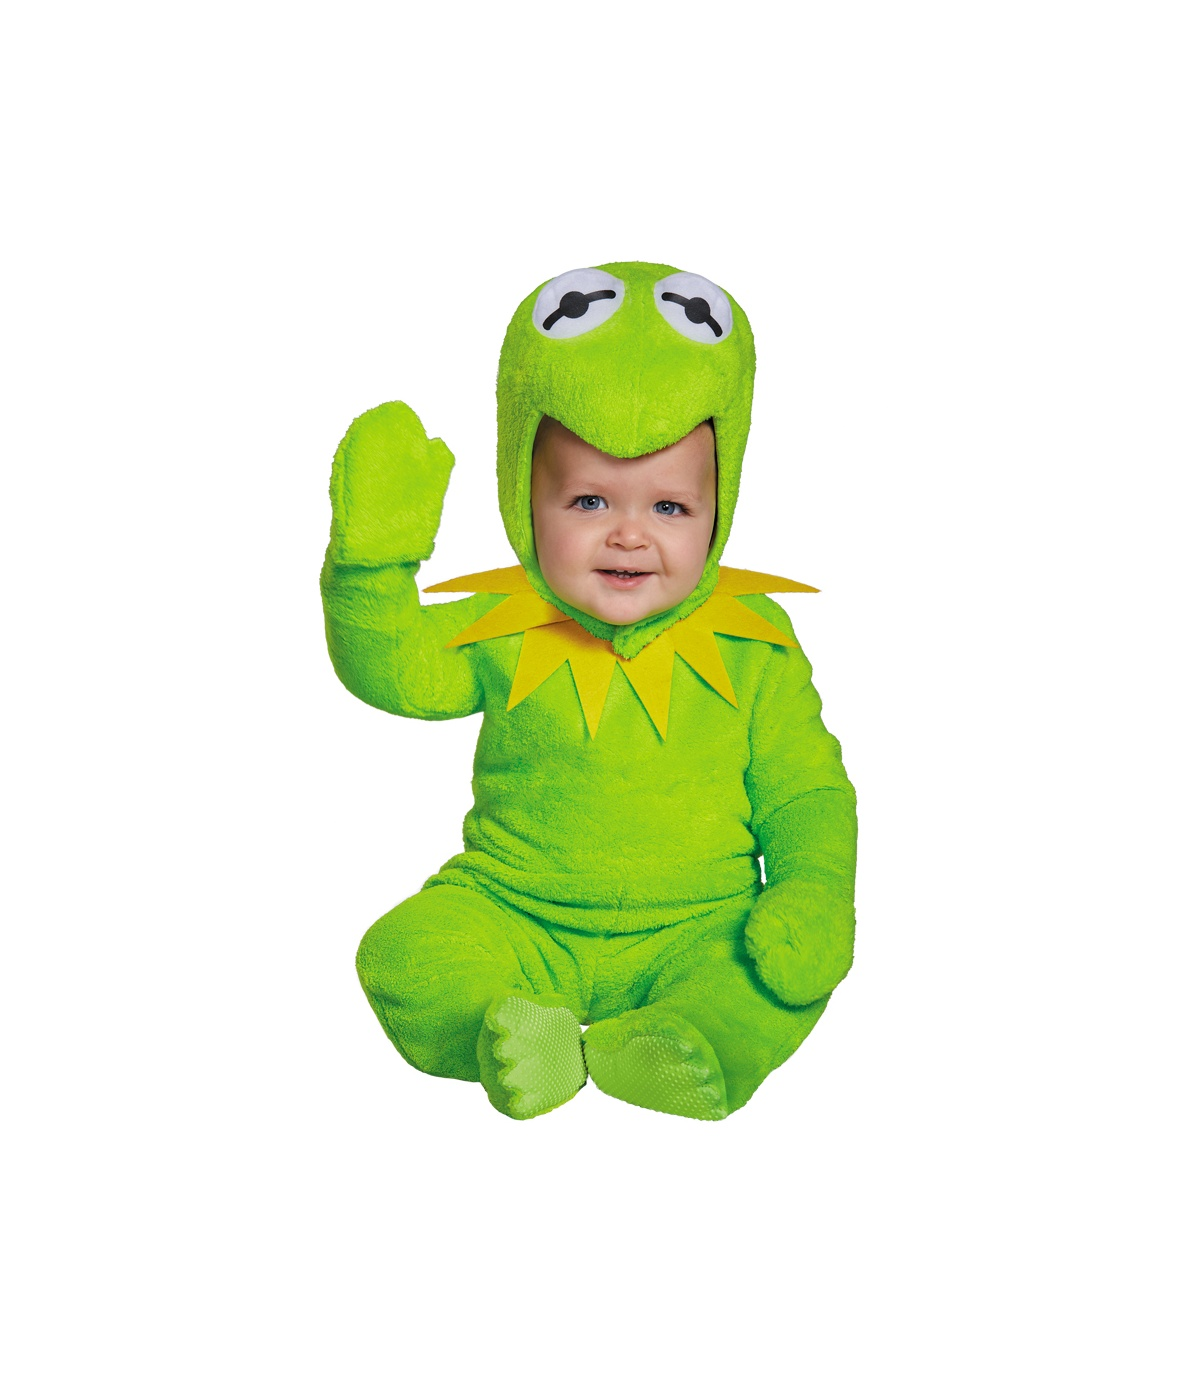 Product Reviews for Adult Deluxe Kermit the Frog Costume